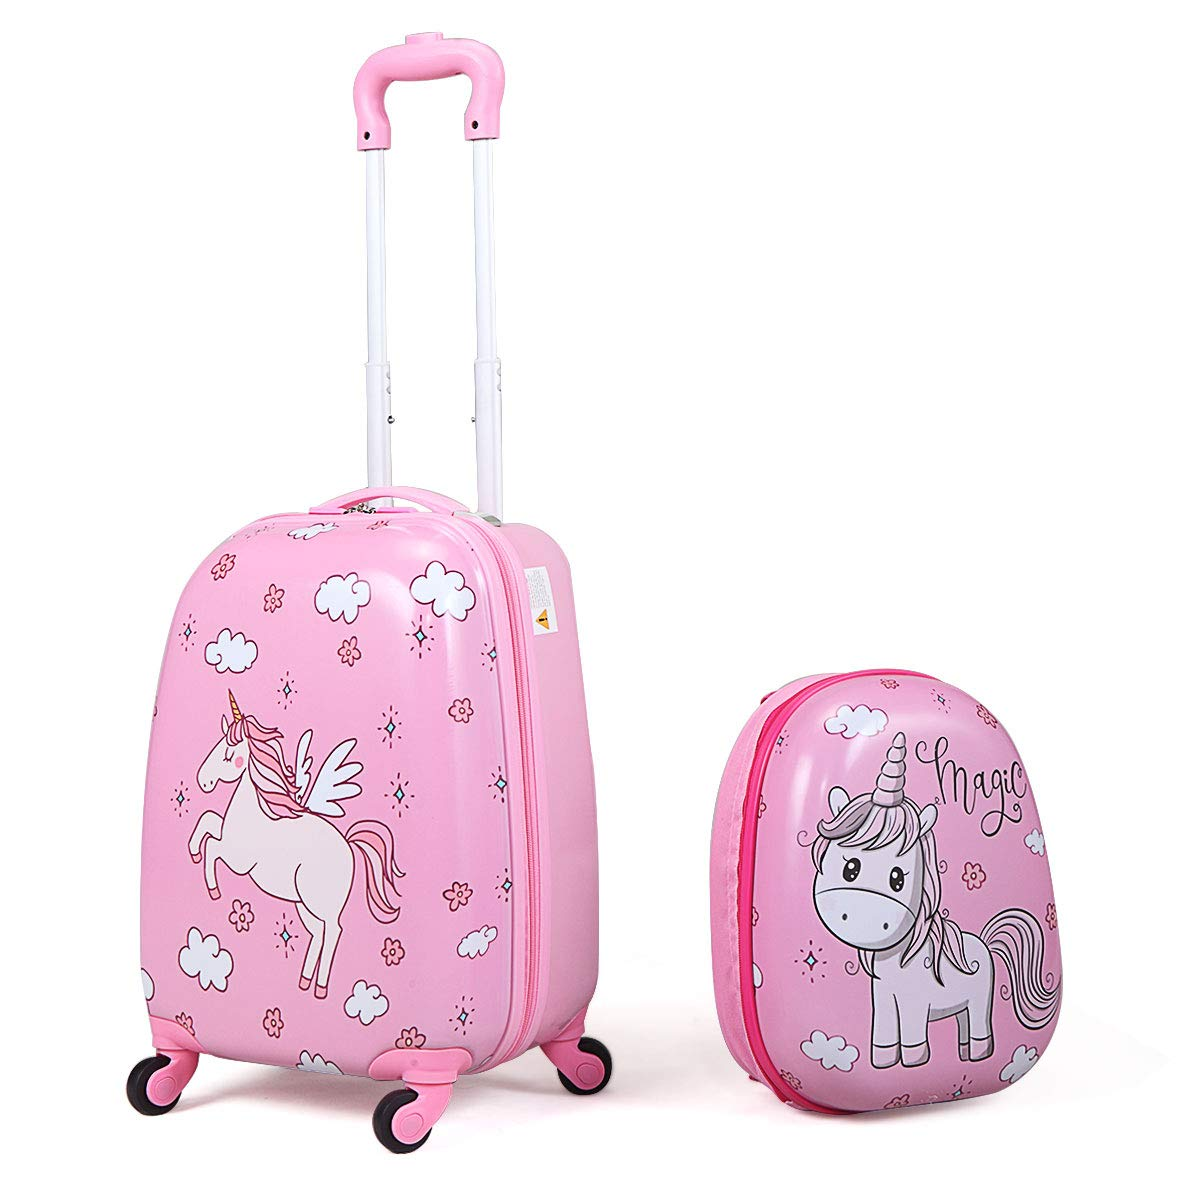 JAXPETY 2Pc 12'' 16'' Kids Carry On Luggage Set Upright Hard Side Hard Shell Suitcase School Bag Pink by JAXPETY